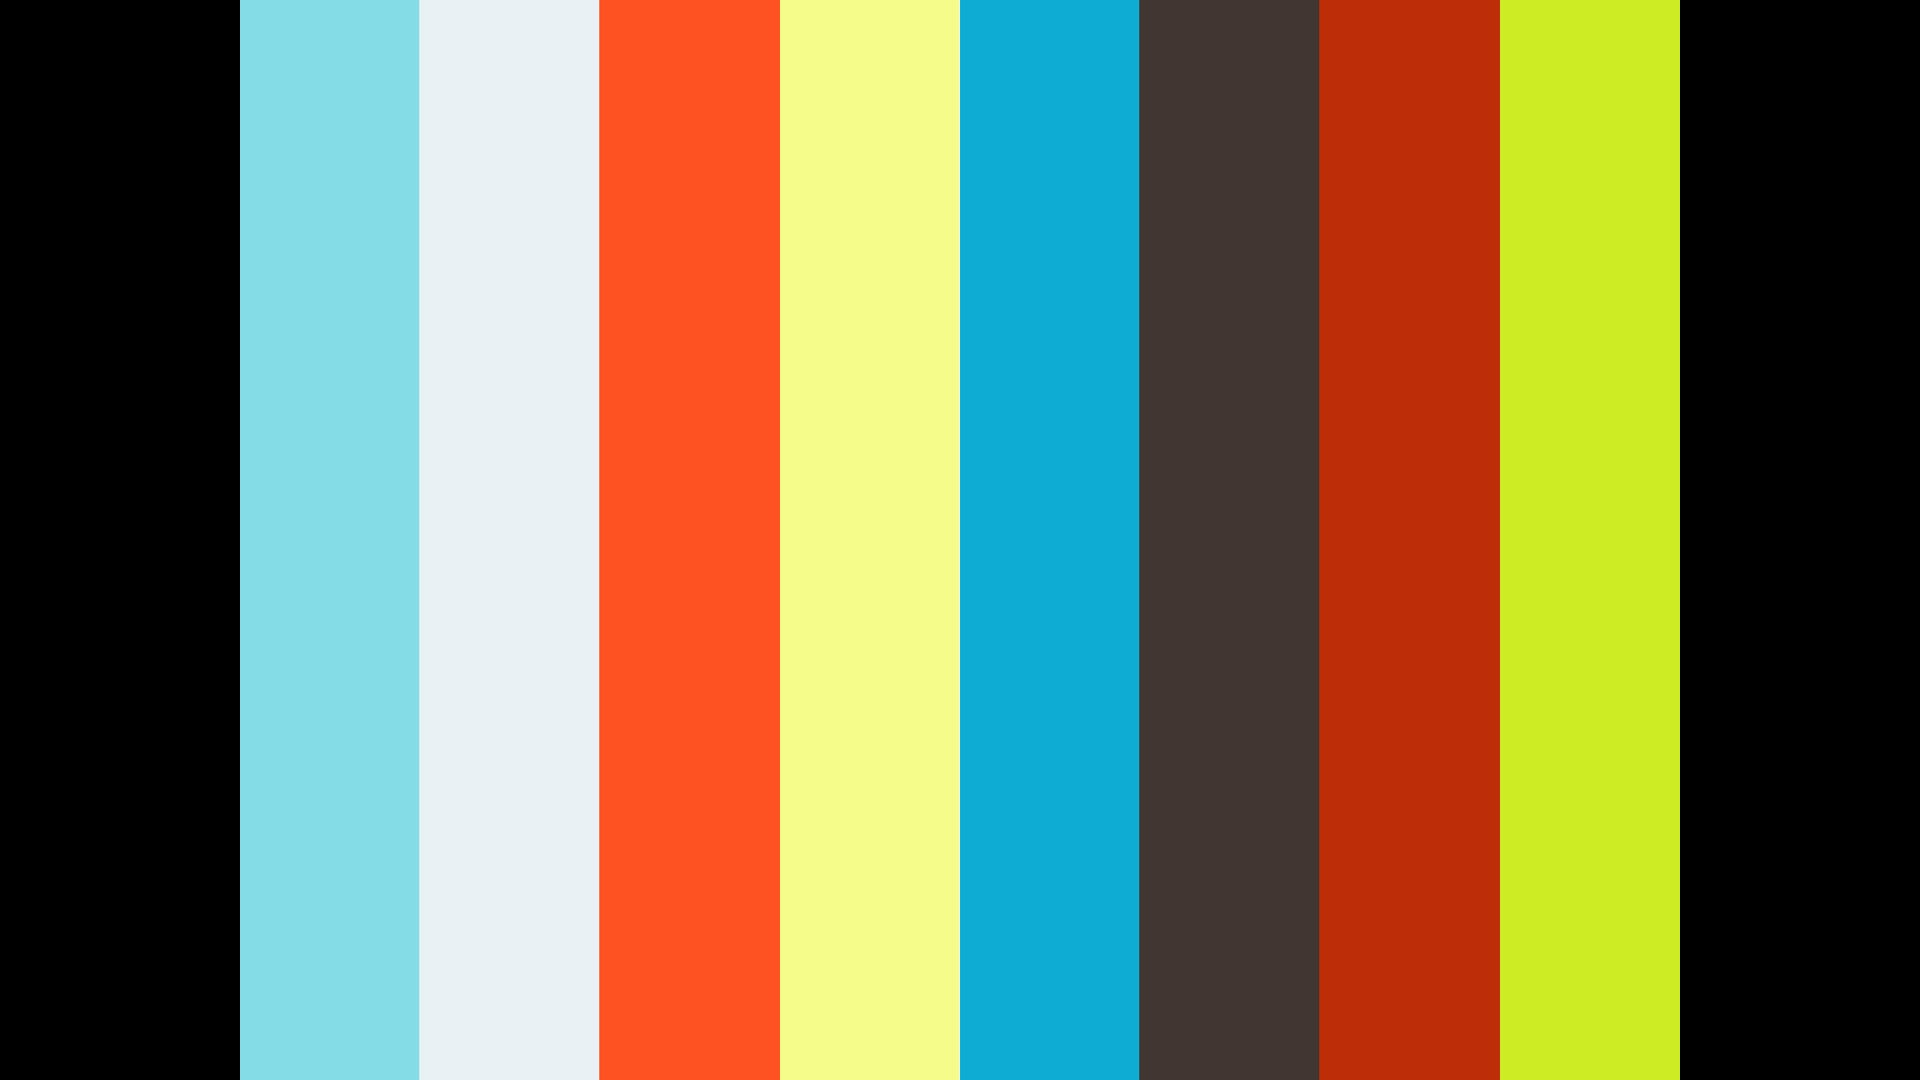 Panel Discussion - Doctors: Beth Latimer, Mark Pasternack and Elena Frid